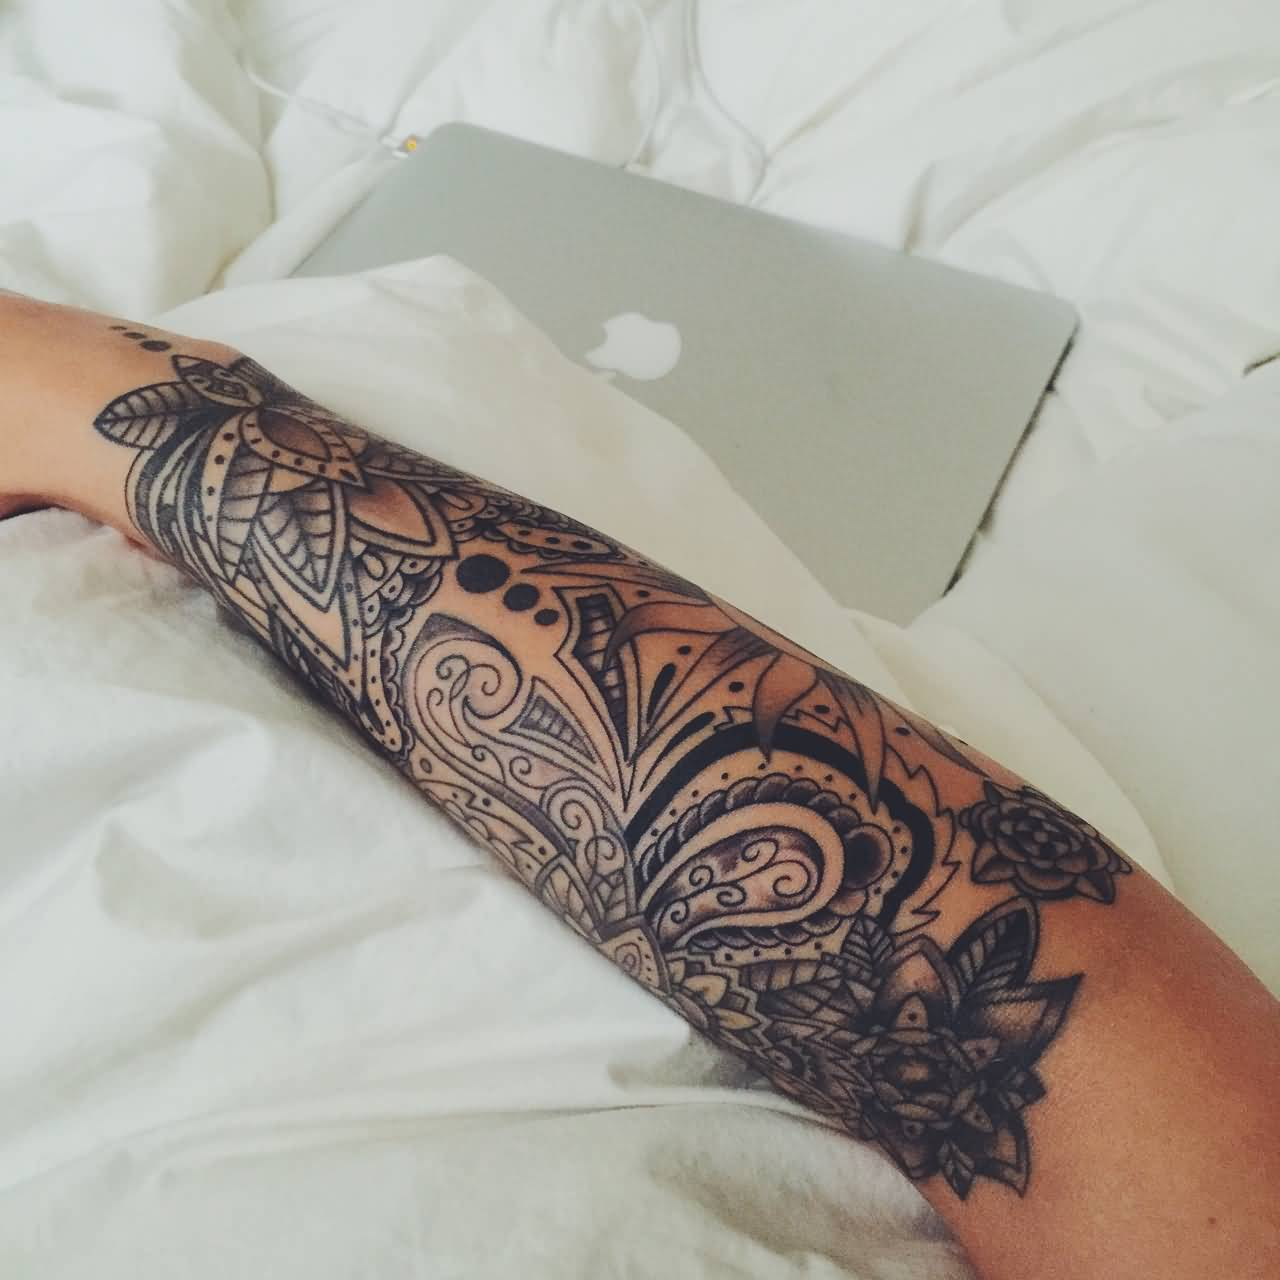 Lower Sleeve Design With Paisley Pattern Tattoo Idea